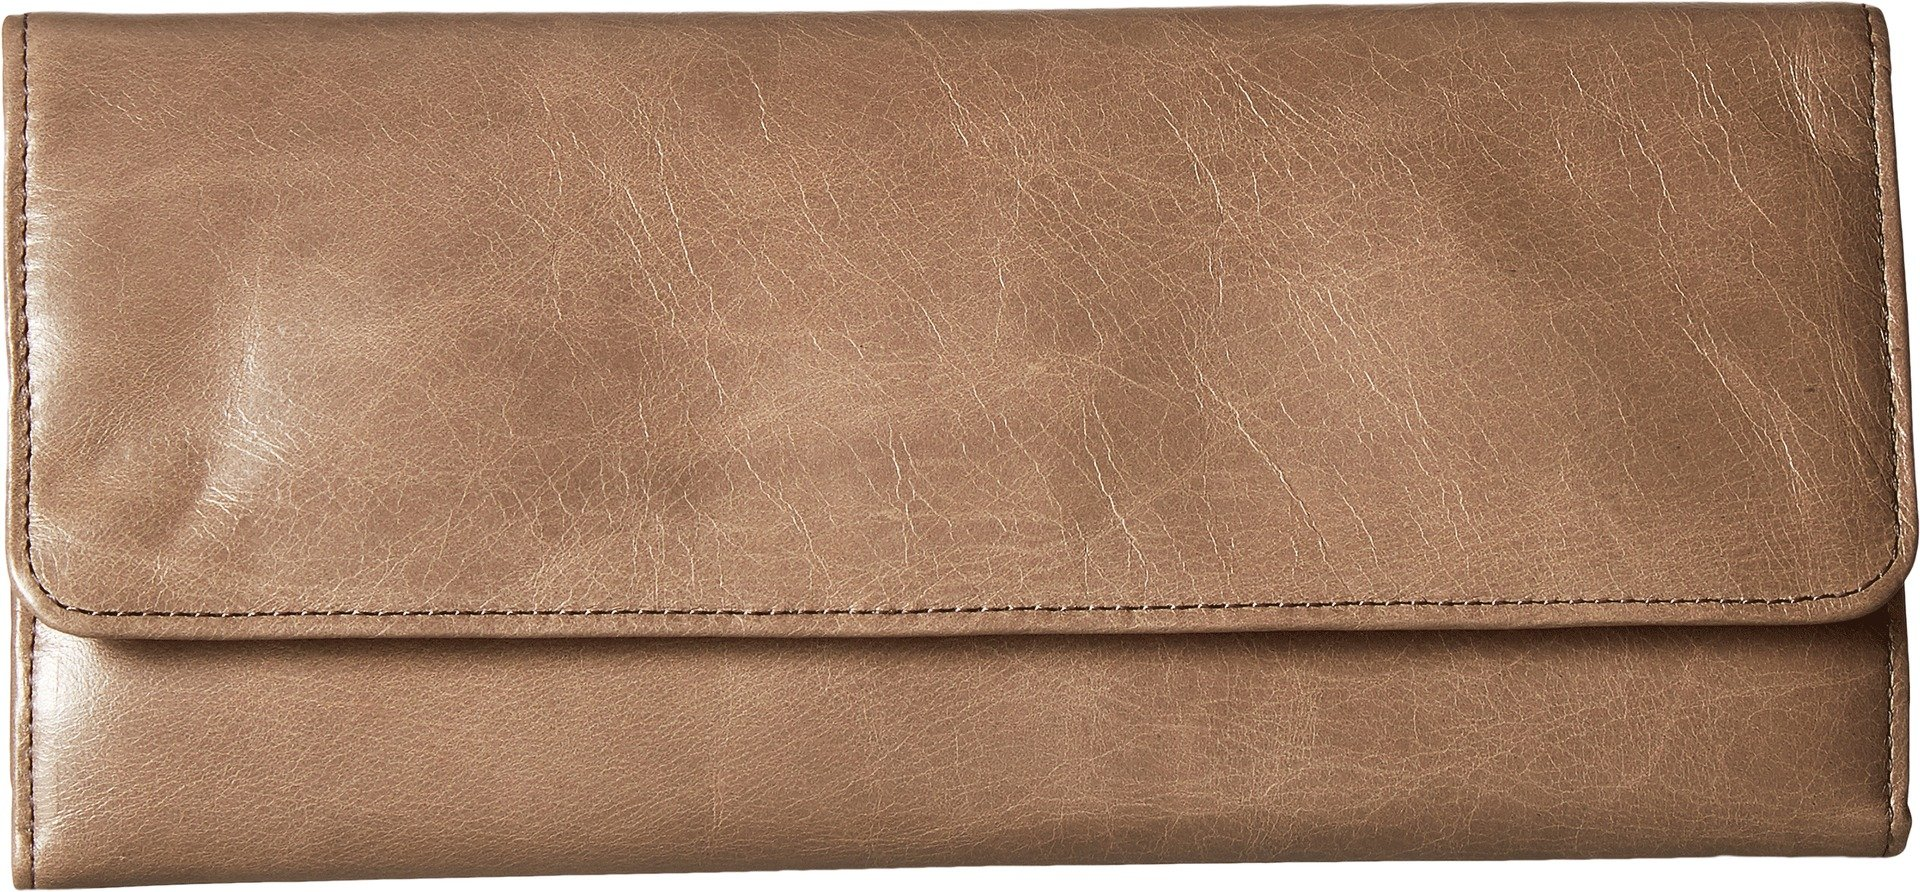 Hobo Womens Leather Sadie Continental Clutch Wallet (Ash)